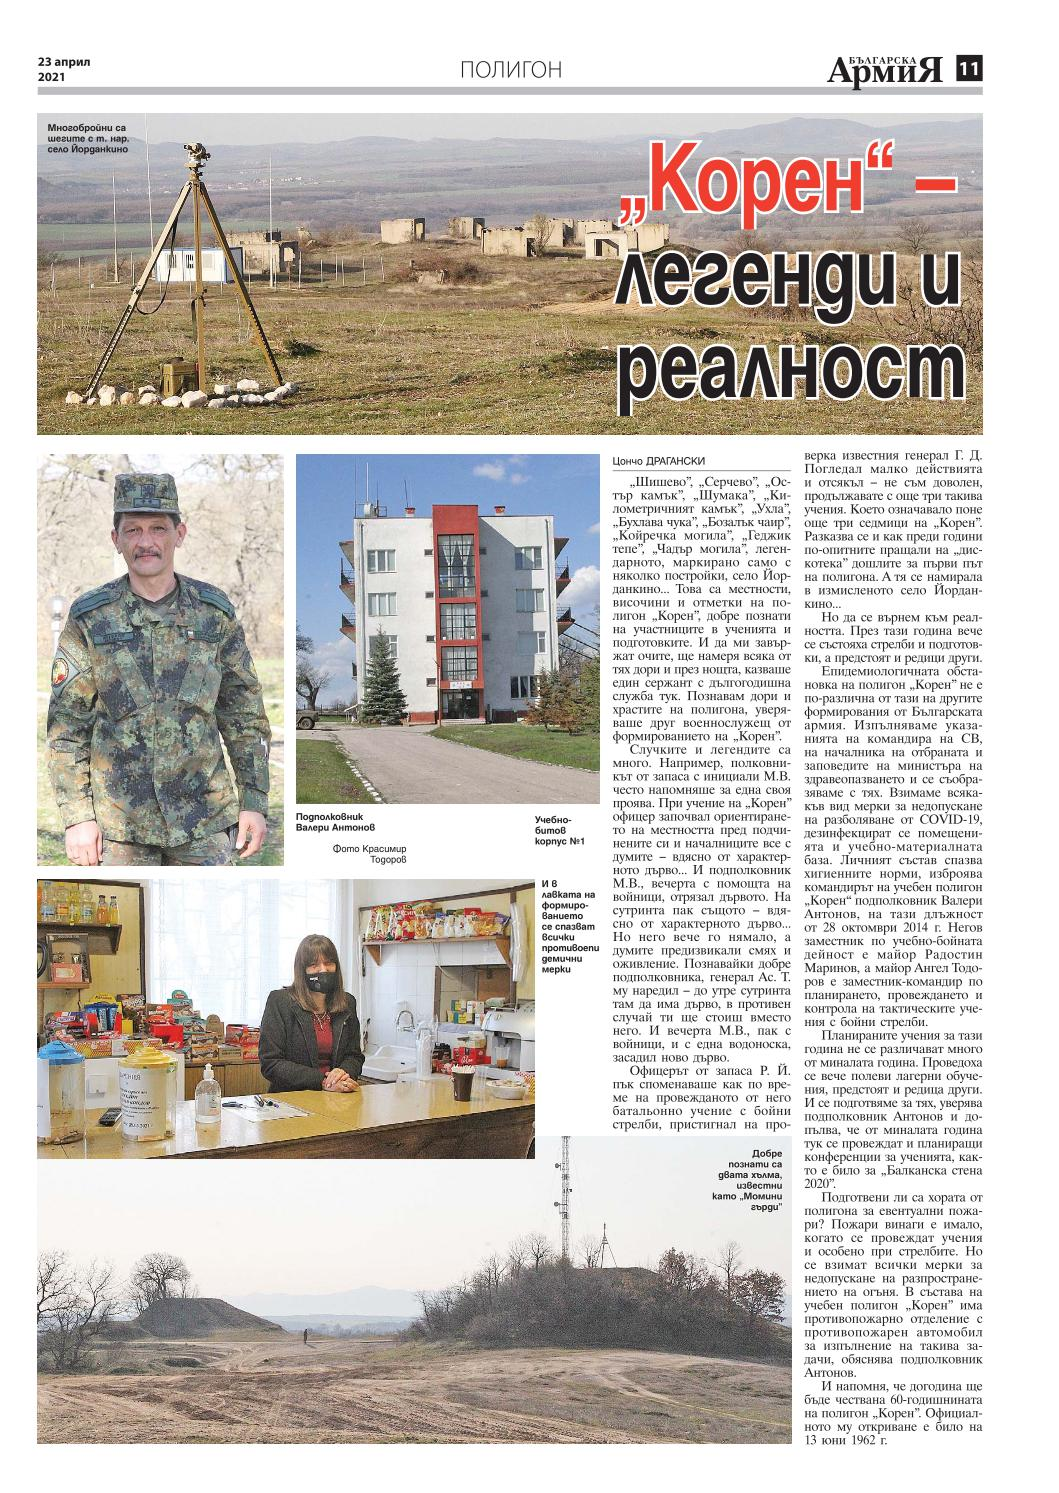 https://armymedia.bg/wp-content/uploads/2021/04/11.page1_-2.jpg